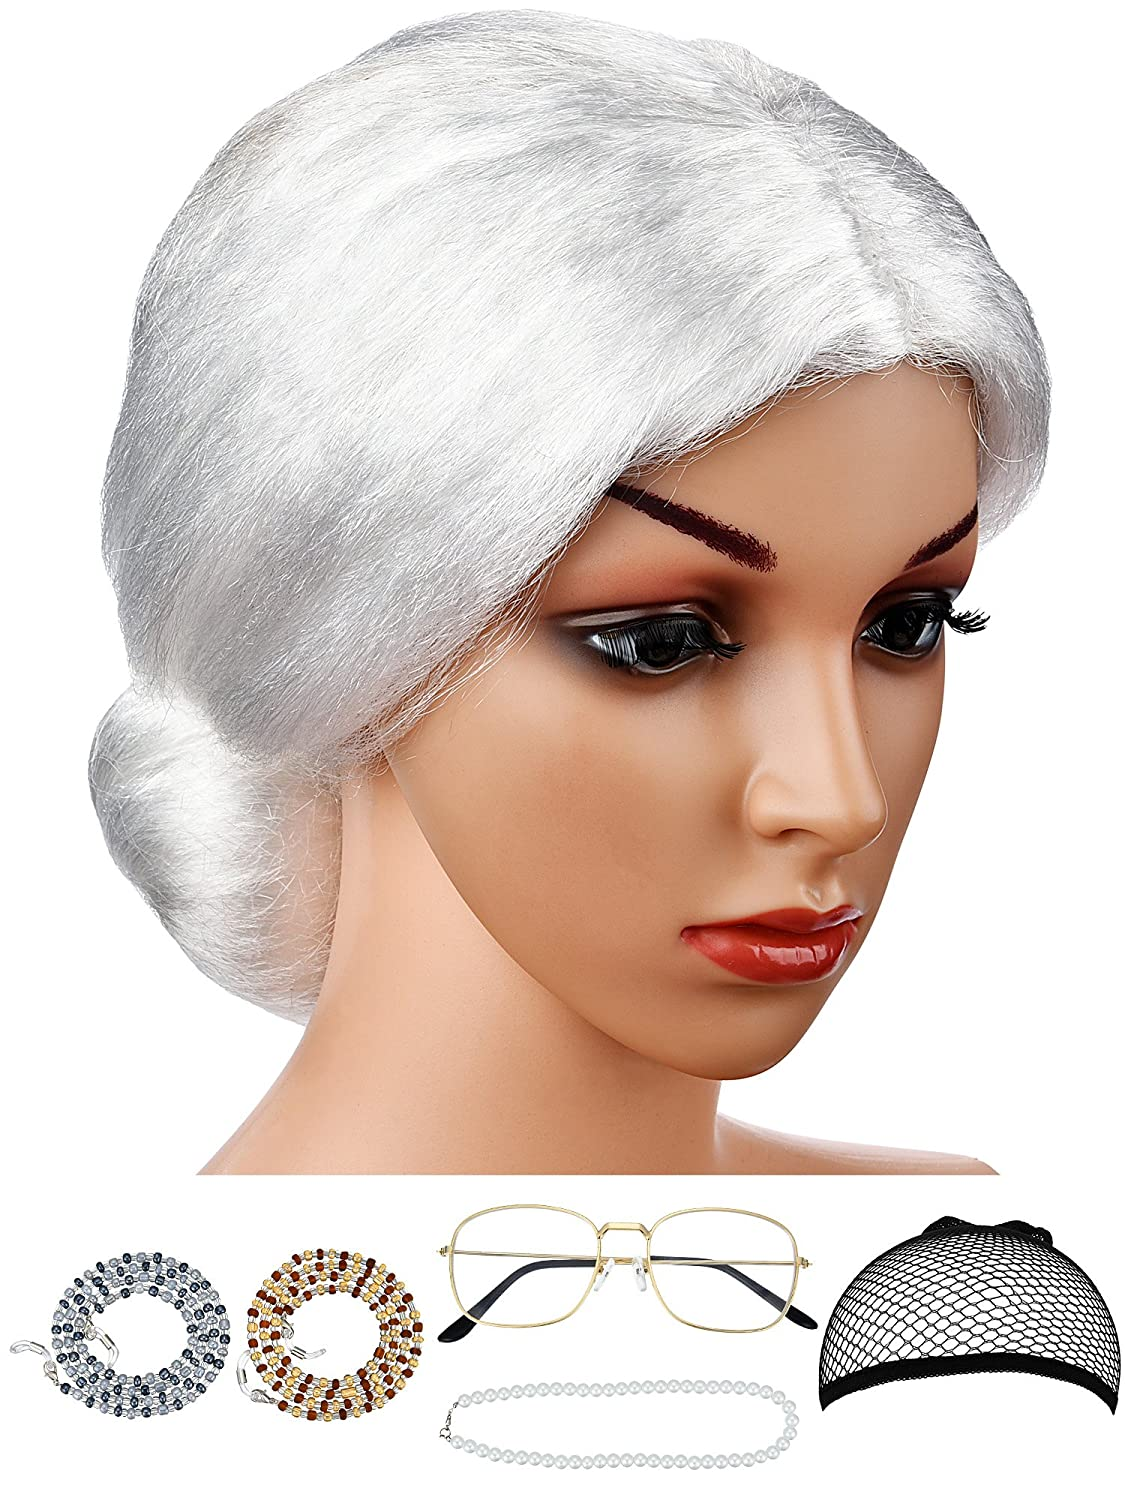 Hestya 6 Pieces Old Lady Costume Granny Wig Accessories for Dress up